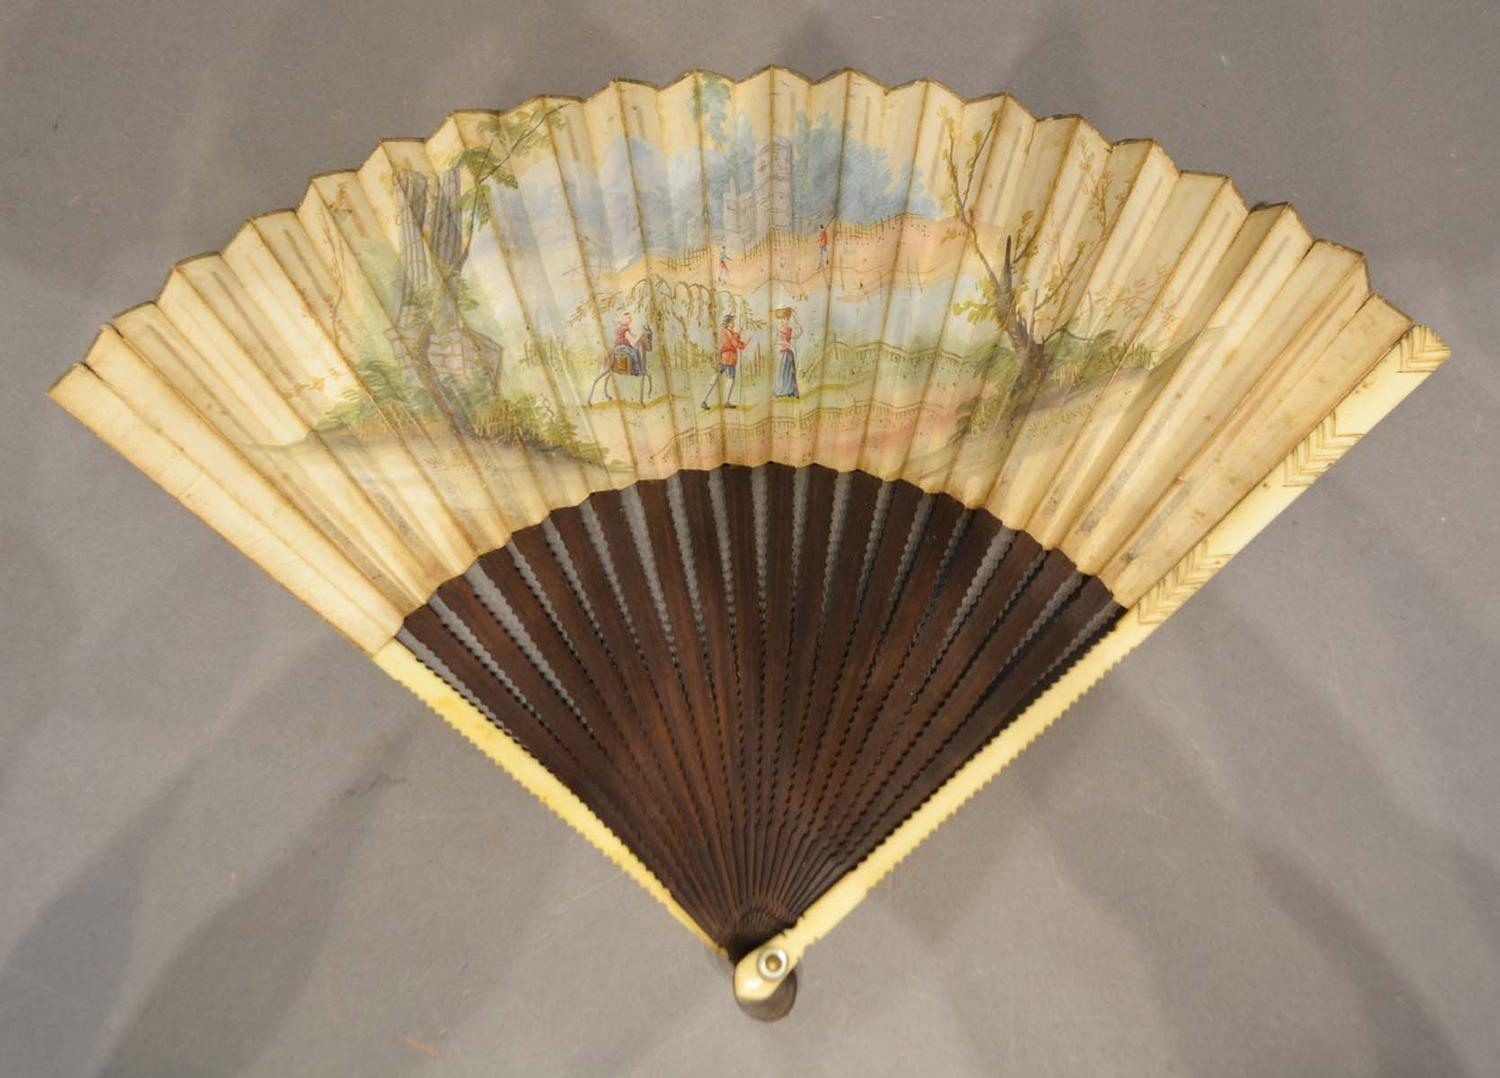 Lot 324 - An Early 18th Century German Fan, hand painted with figures within a landscape with shaped wooden